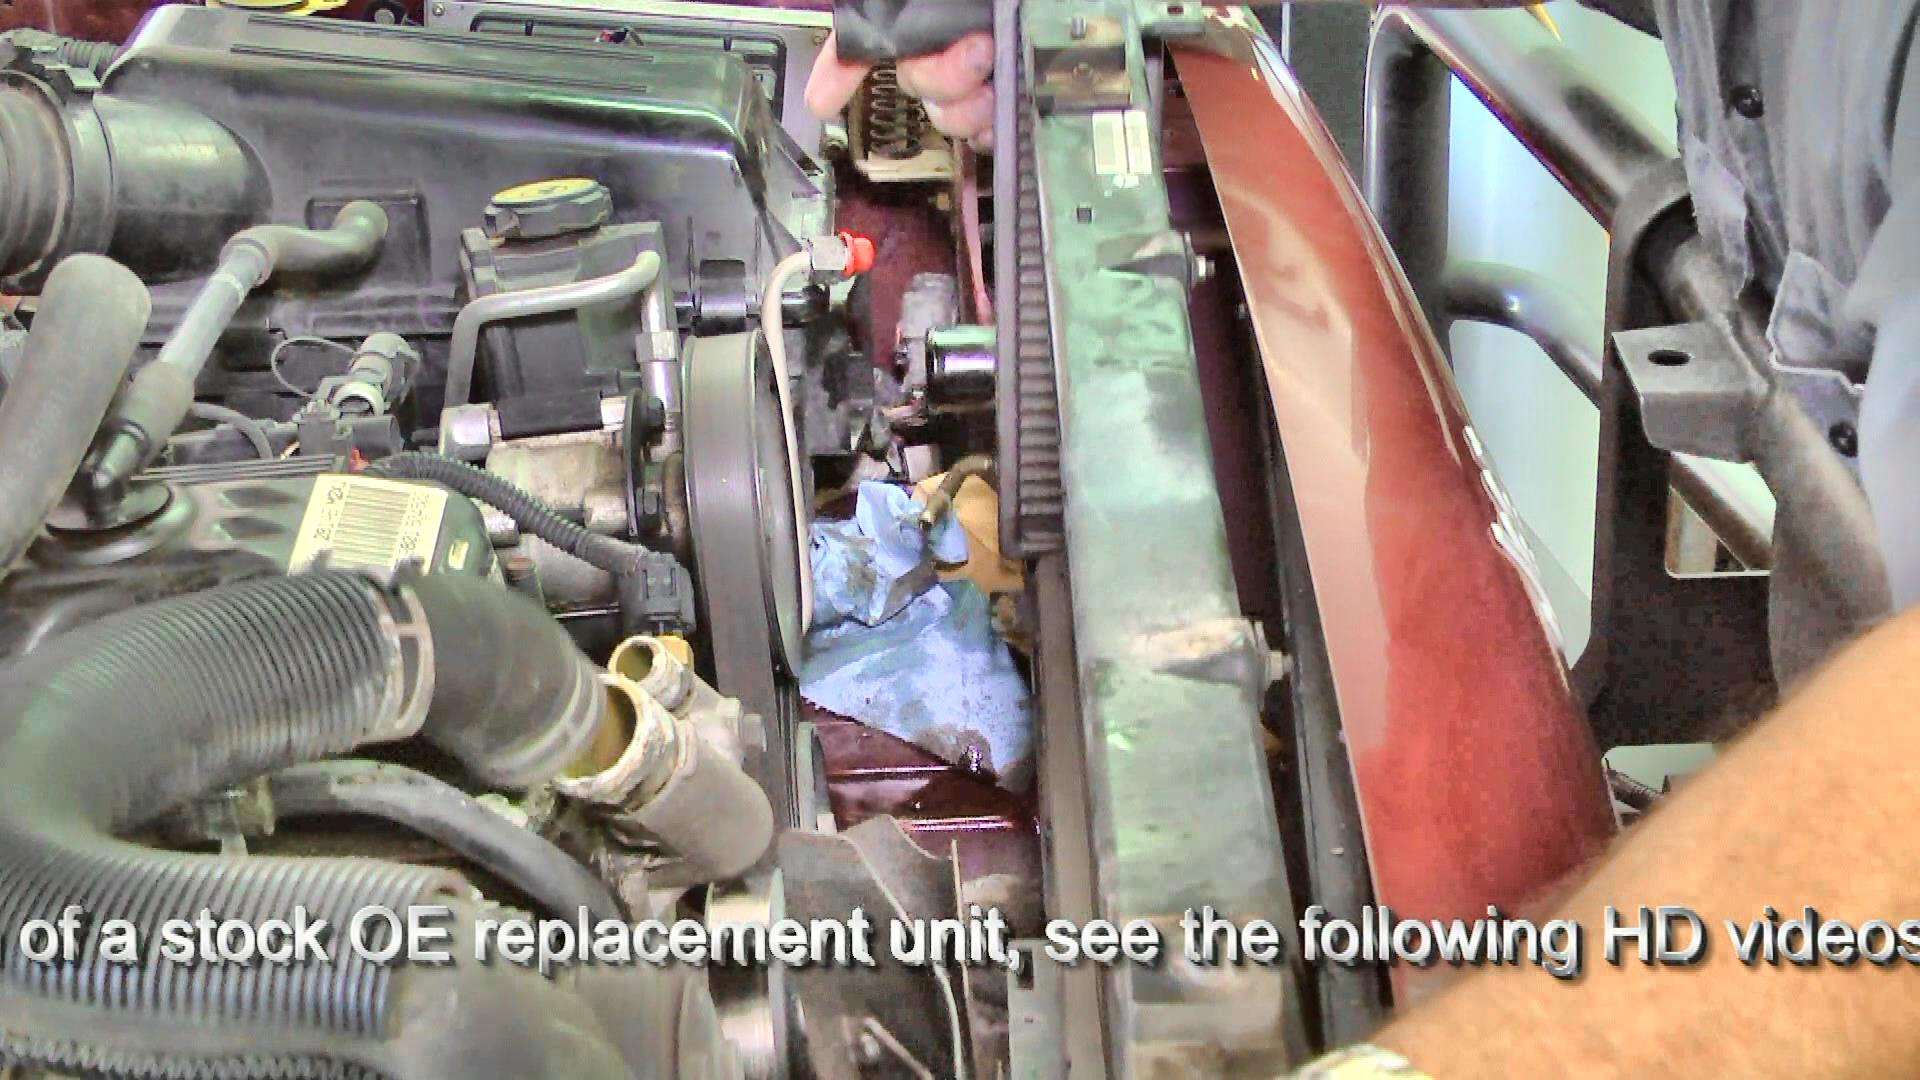 Jeep XJ Cherokee radiator removal from the engine bay